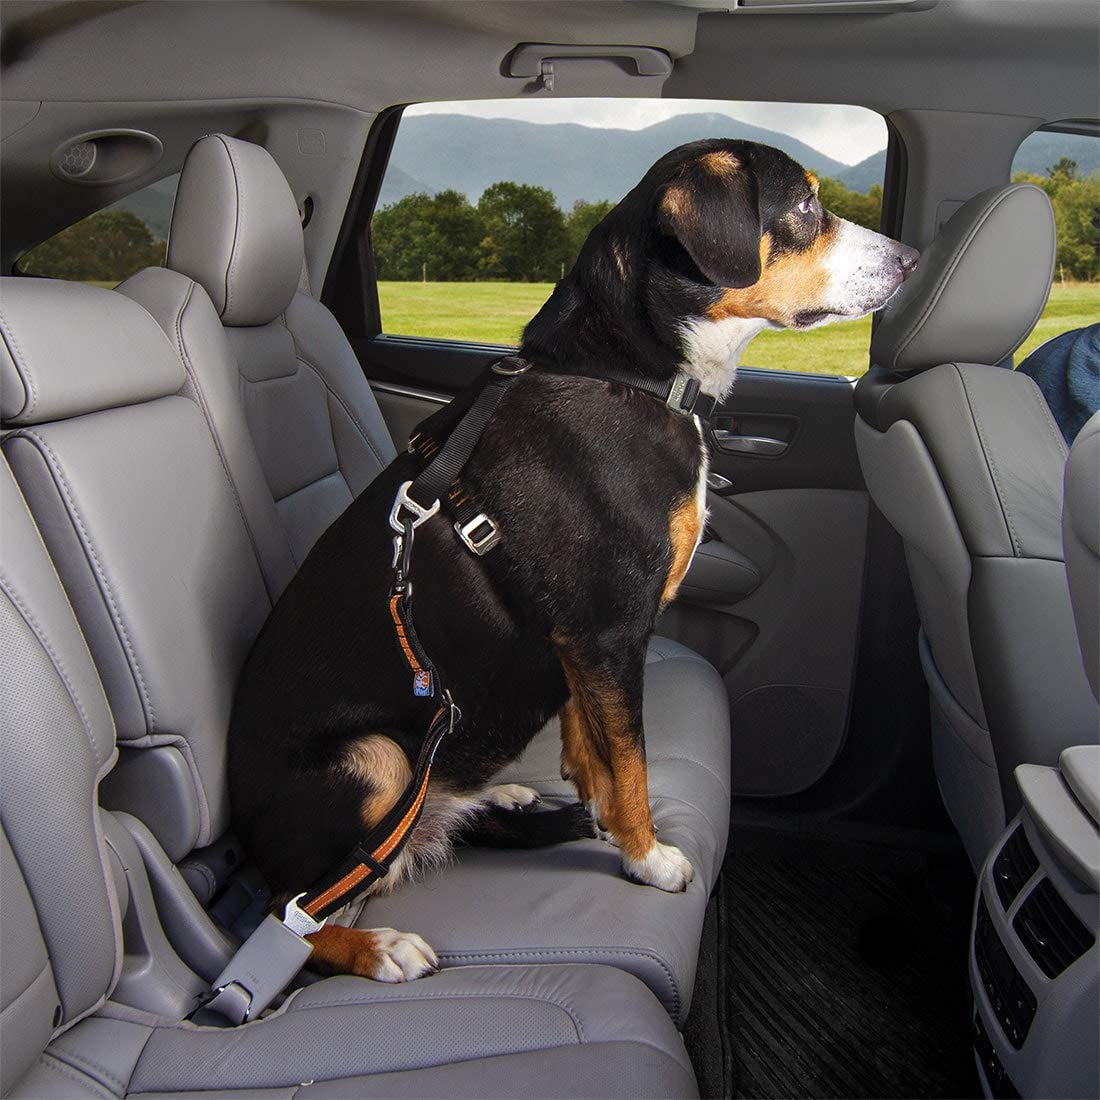 Compatible with any Pet Harness Zipline Kurgo Seatbelt Tether for Dogs Universal Car Seat Belt for Pets Carabiner Attachment| Easy Installation Adjustable Length Dog Safety Belt Swivel Clip